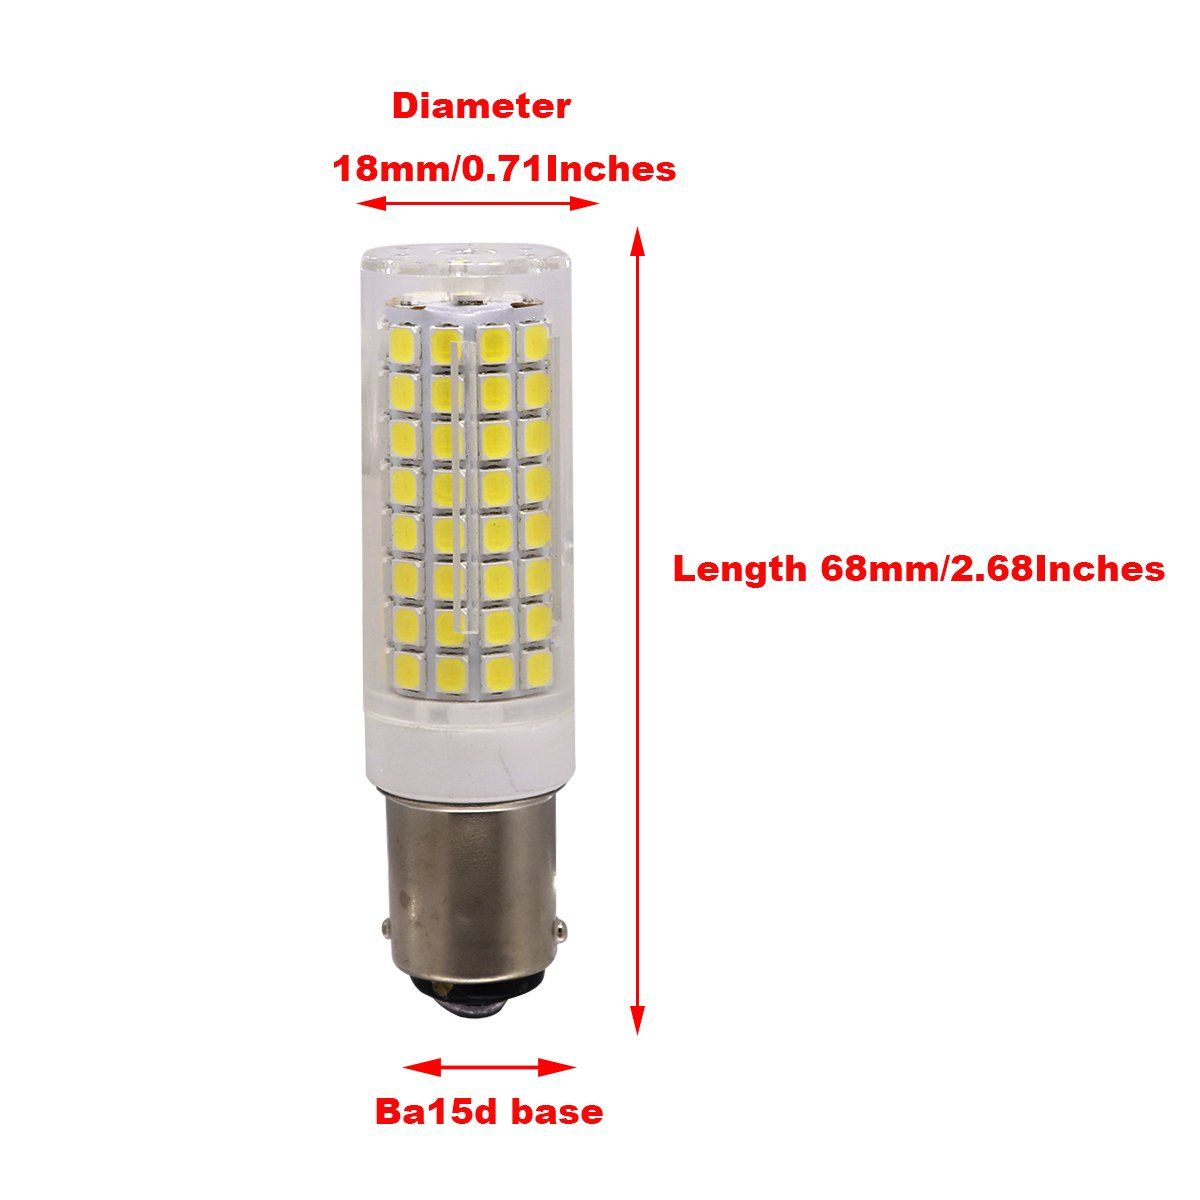 Ylaide Ba15d Led Light Bulb Dimmable 75w Equivalent Double Bayonet Sewing Machine 110v 120v Input 75w 100w Halogne Bulbs Replace In 2020 Light Bulb Led Light Bulb Bulb